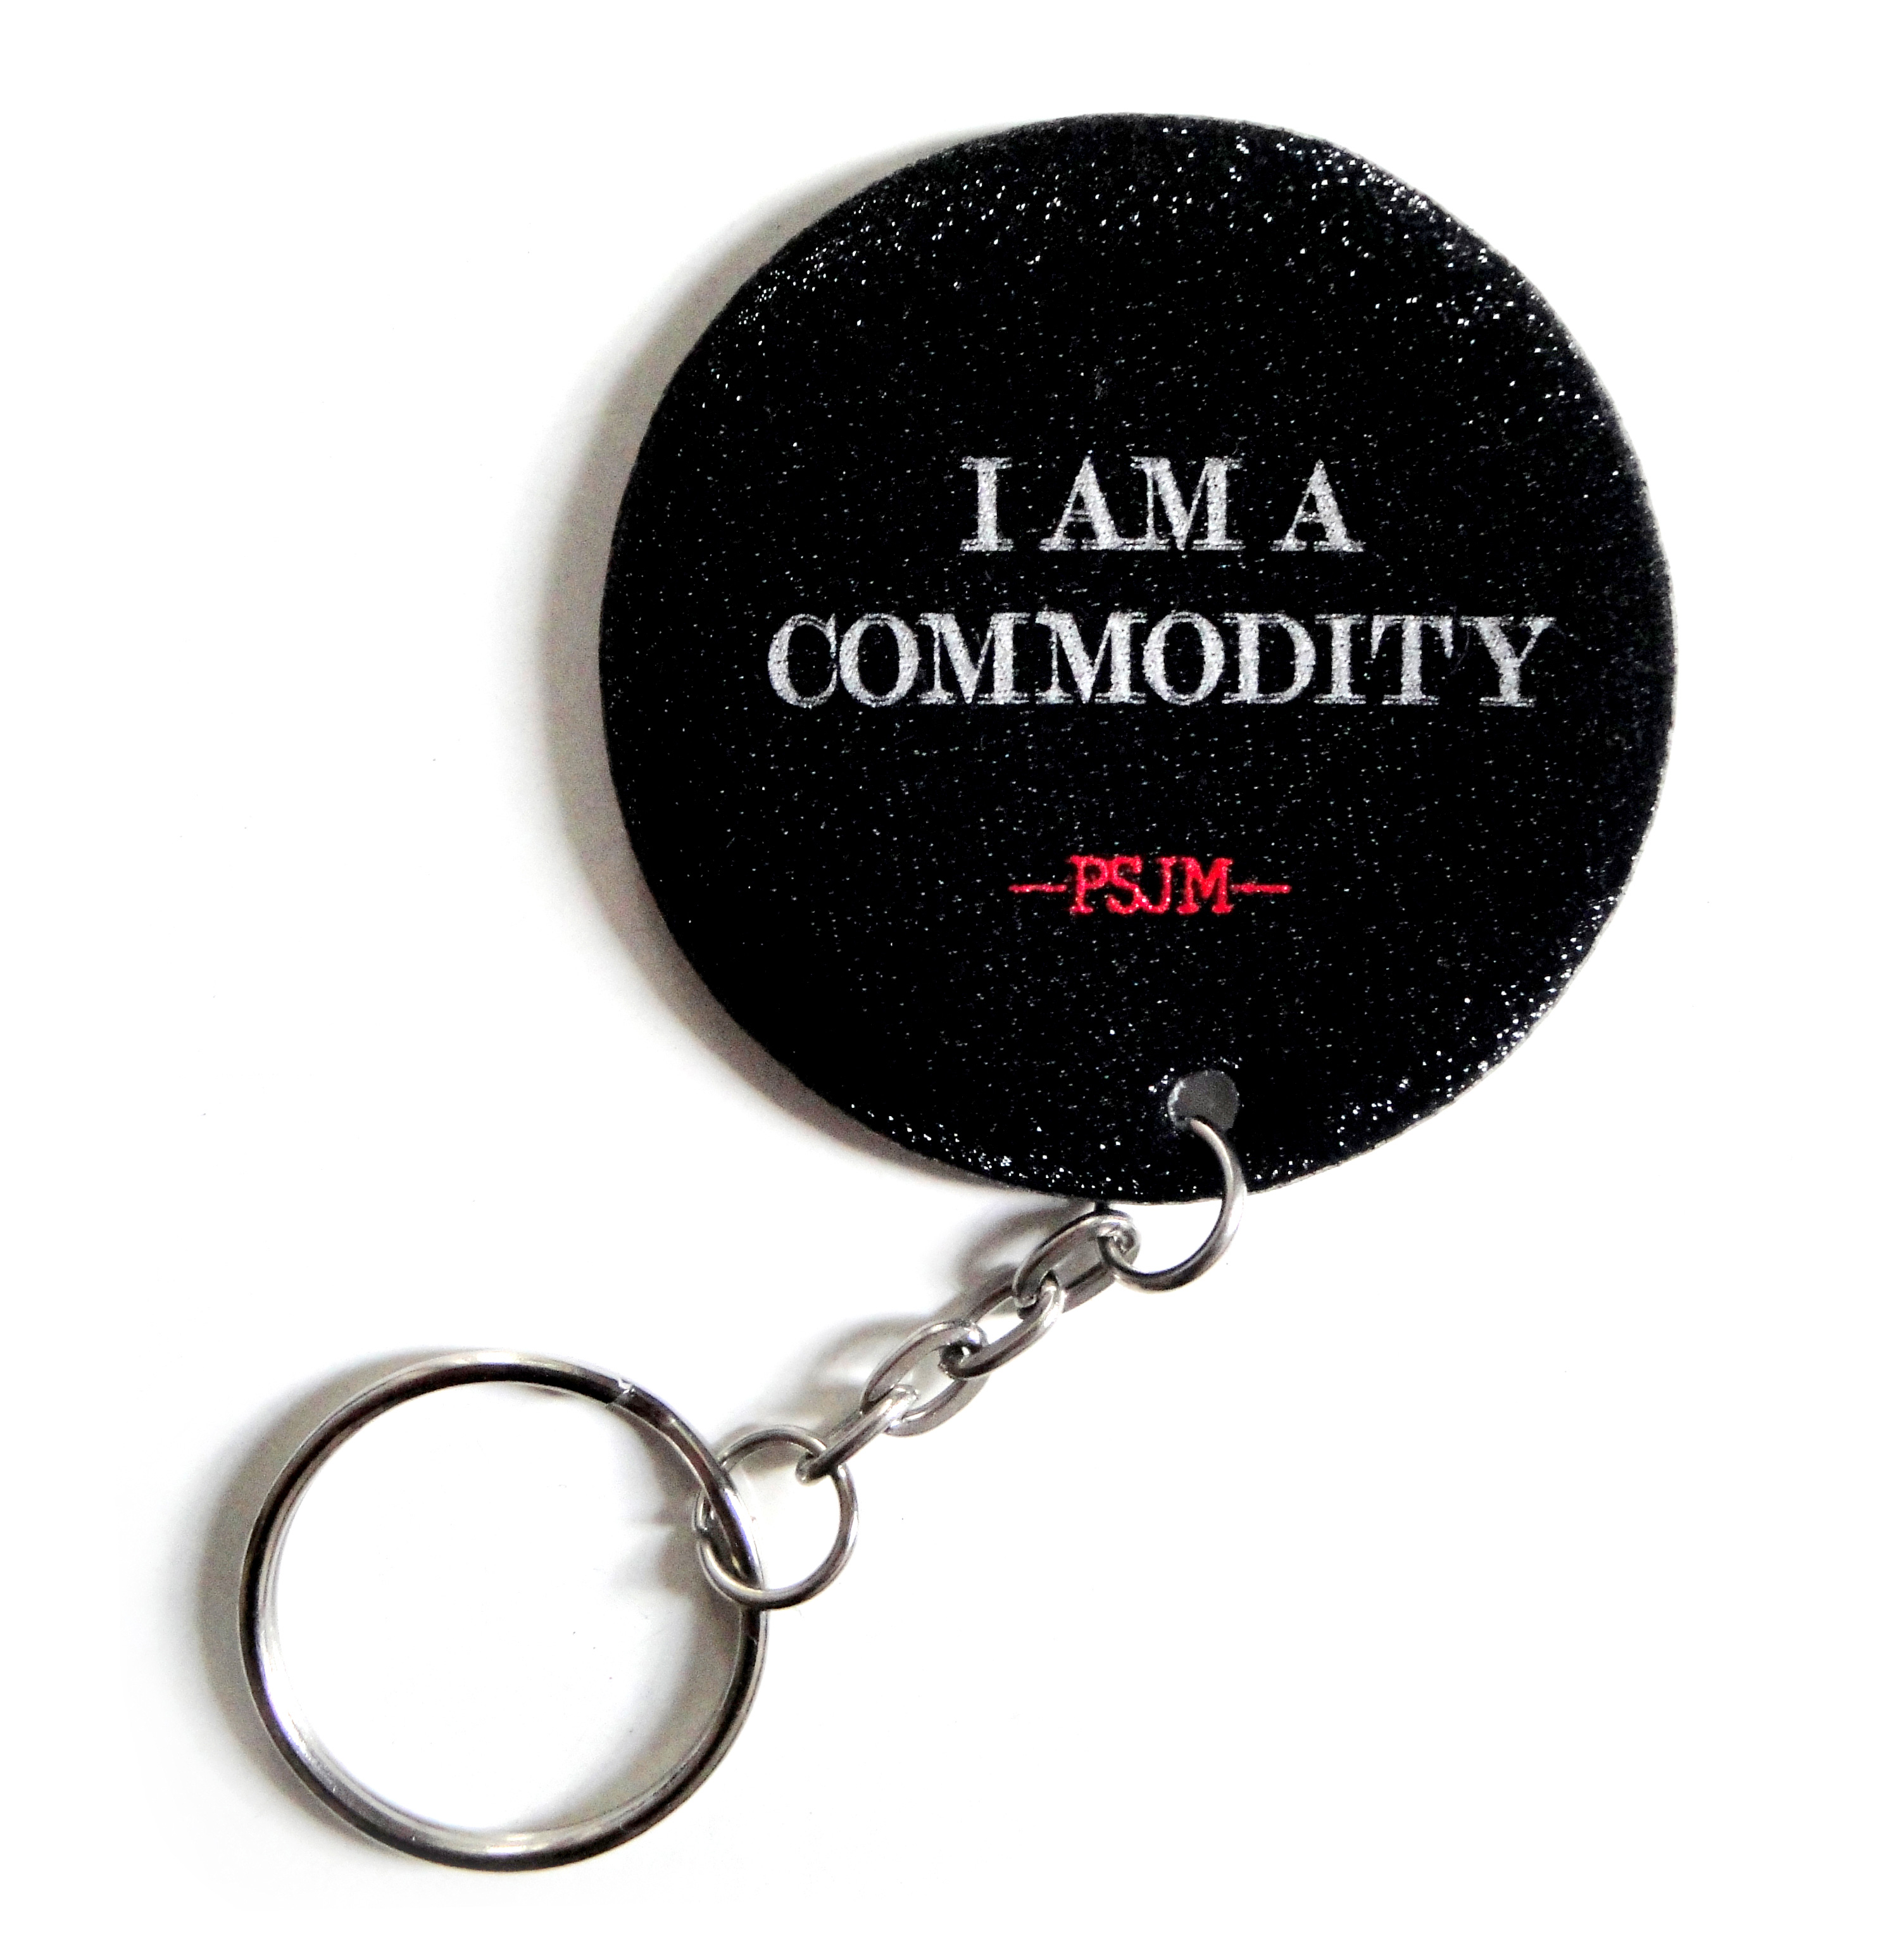 «I am a commodity», Edition of key rings, Freies Museum, Berlin, 2010.